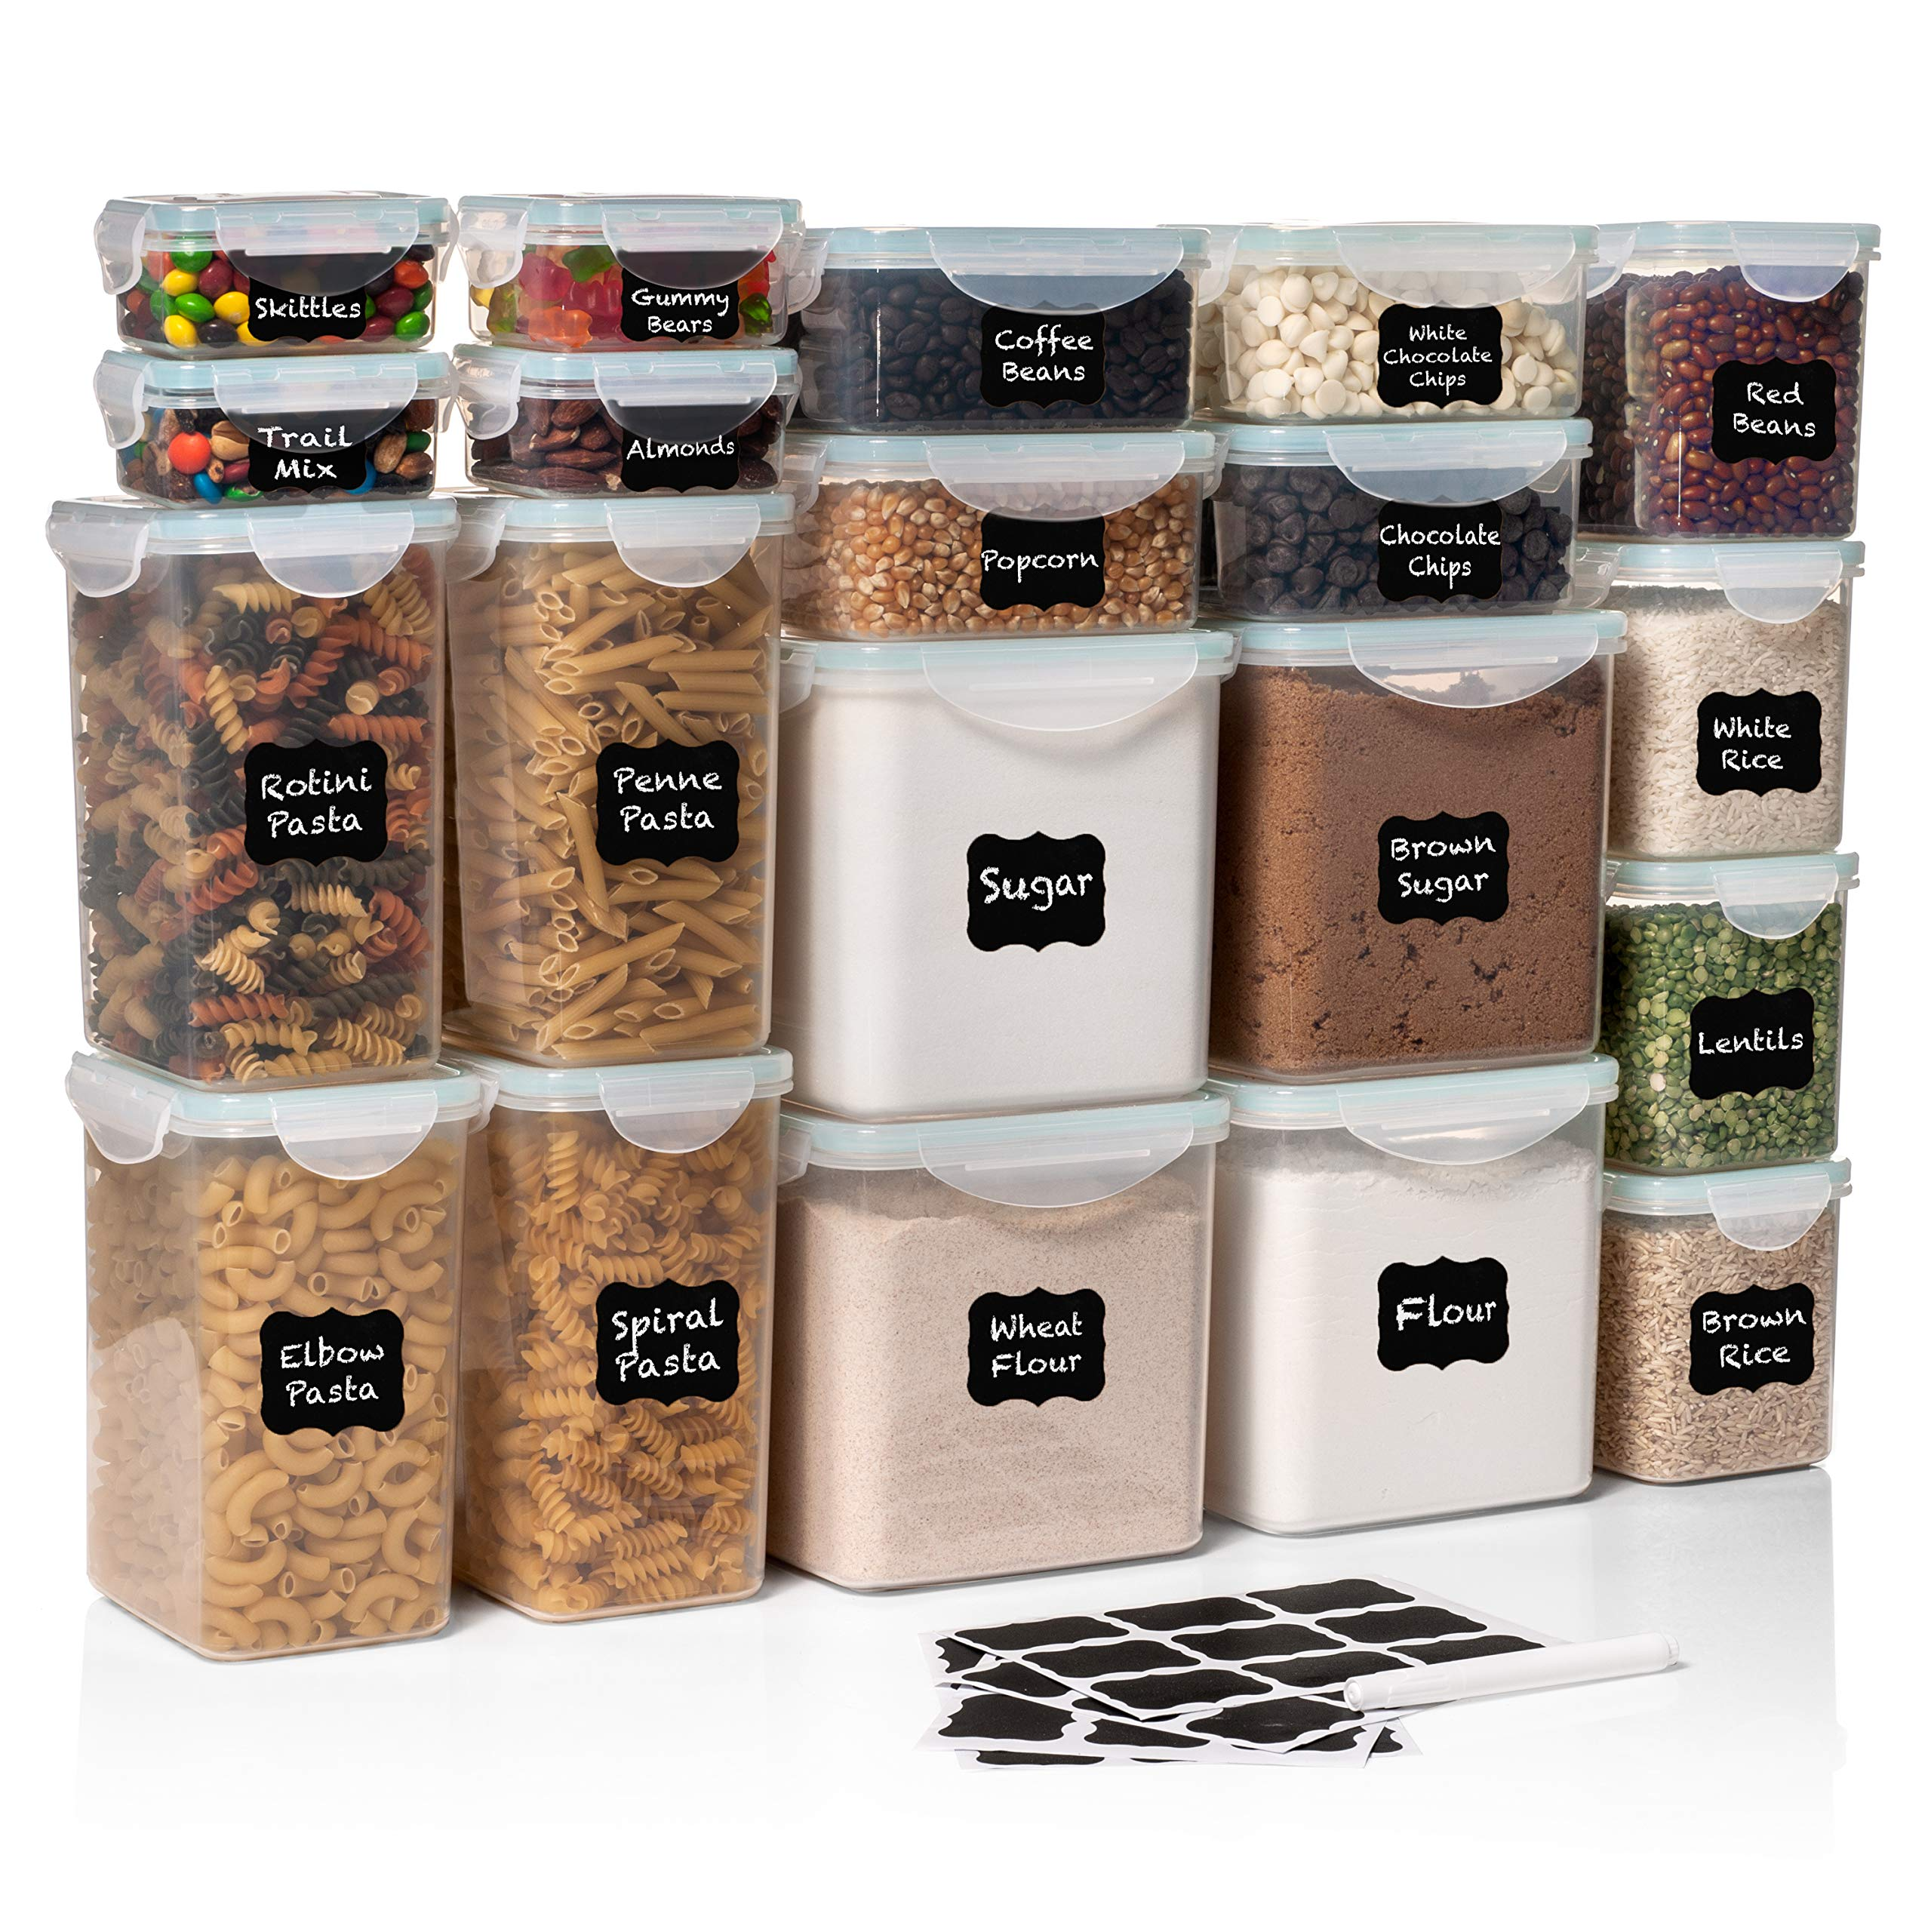 40 PC WIDE DEEP Food Storage Containers - Sugar, Flour Plastic Containers 40 pc (set of 20) - 27 FREE Chalkboard labels & Marker - Airtight, Leakproof, BPA Free - Microwave, Freezer & Dishwasher Safe